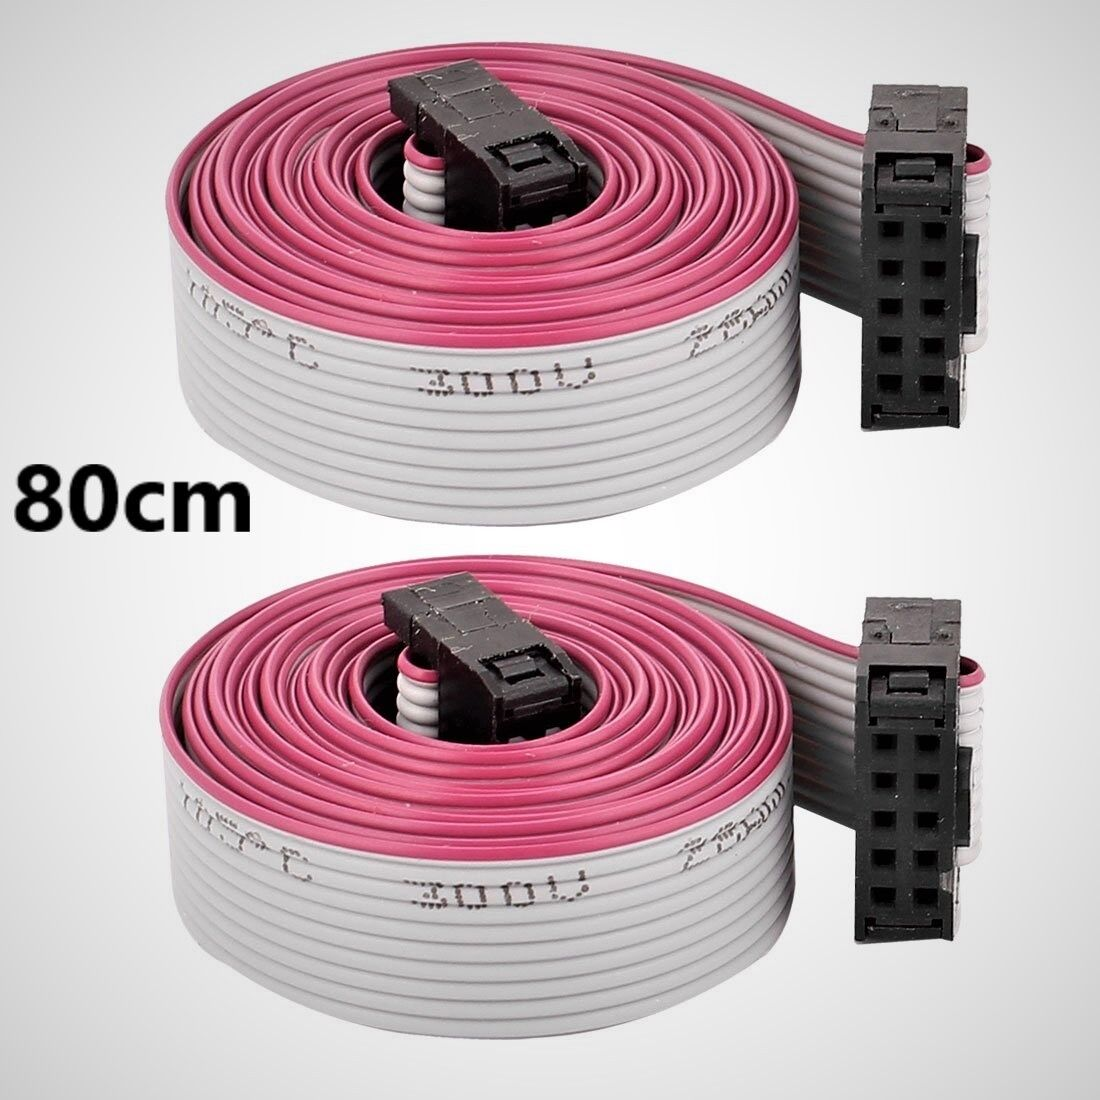 80cm 2004 12864 LCD Extension Cable 3D Printer Prusa Folger Anet Creality Ramps